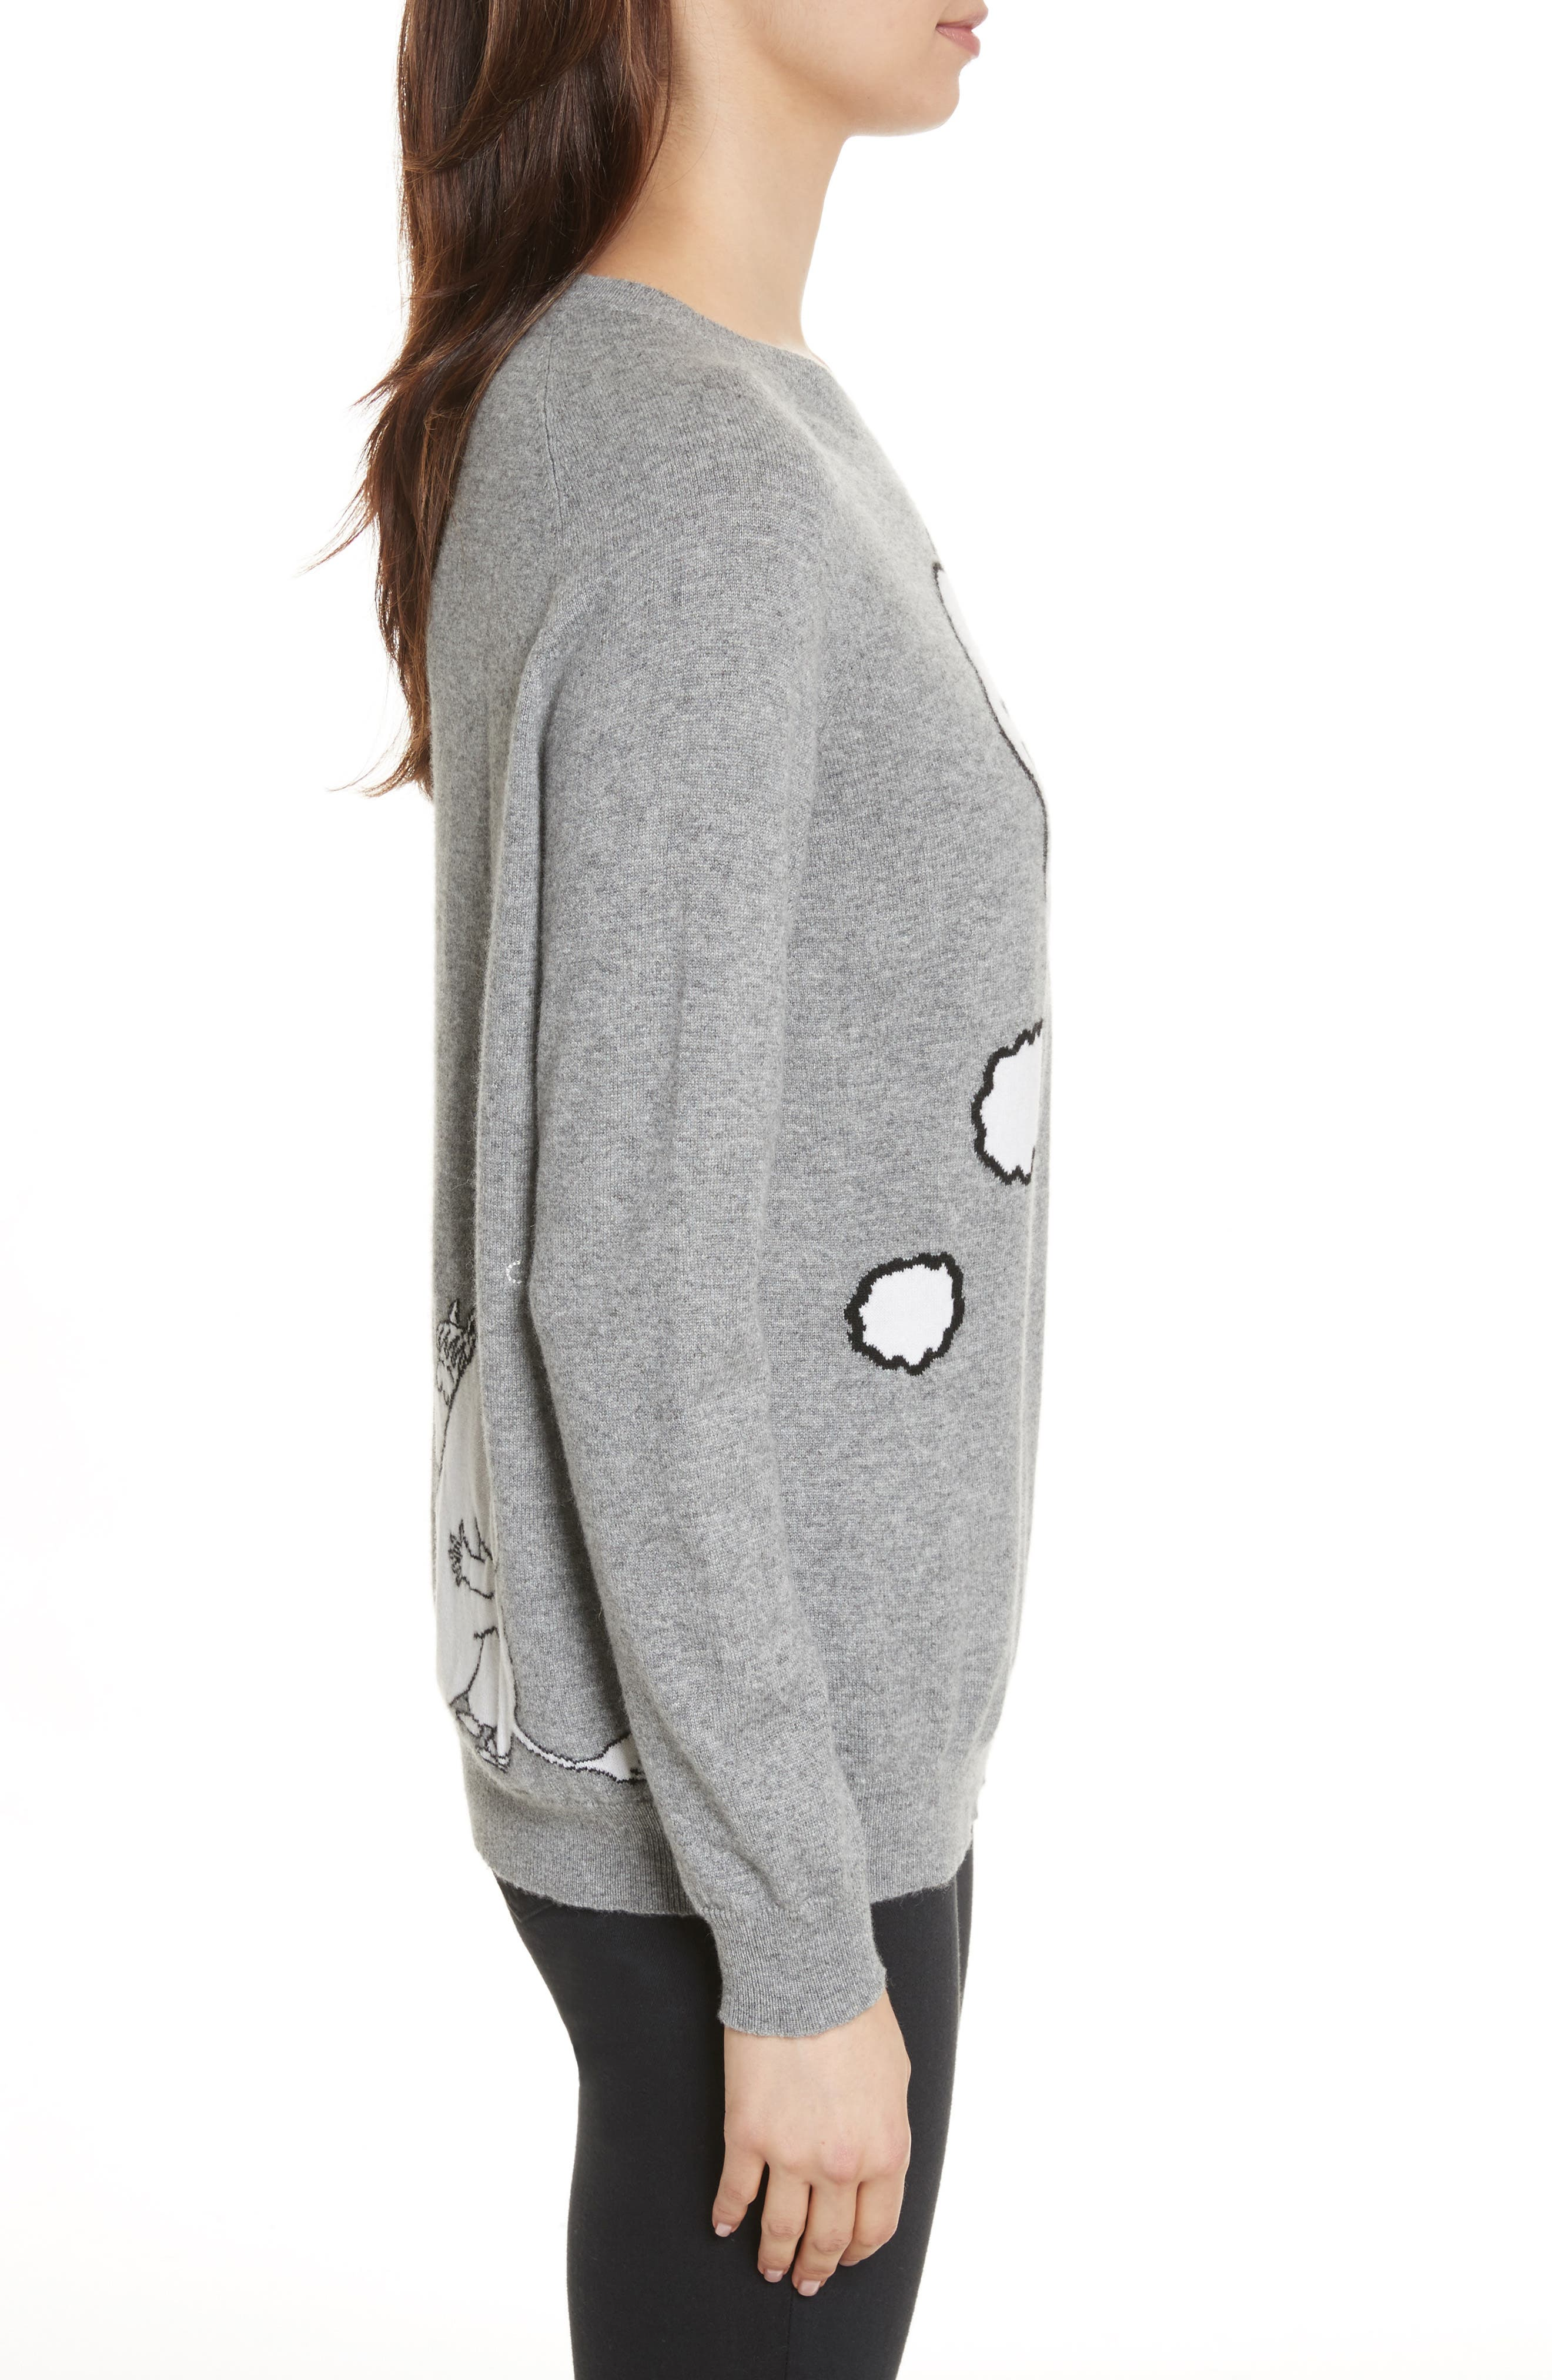 CHINTI & PARKER Just Imagine Moomin Cashmere Sweater,                             Alternate thumbnail 3, color,                             020